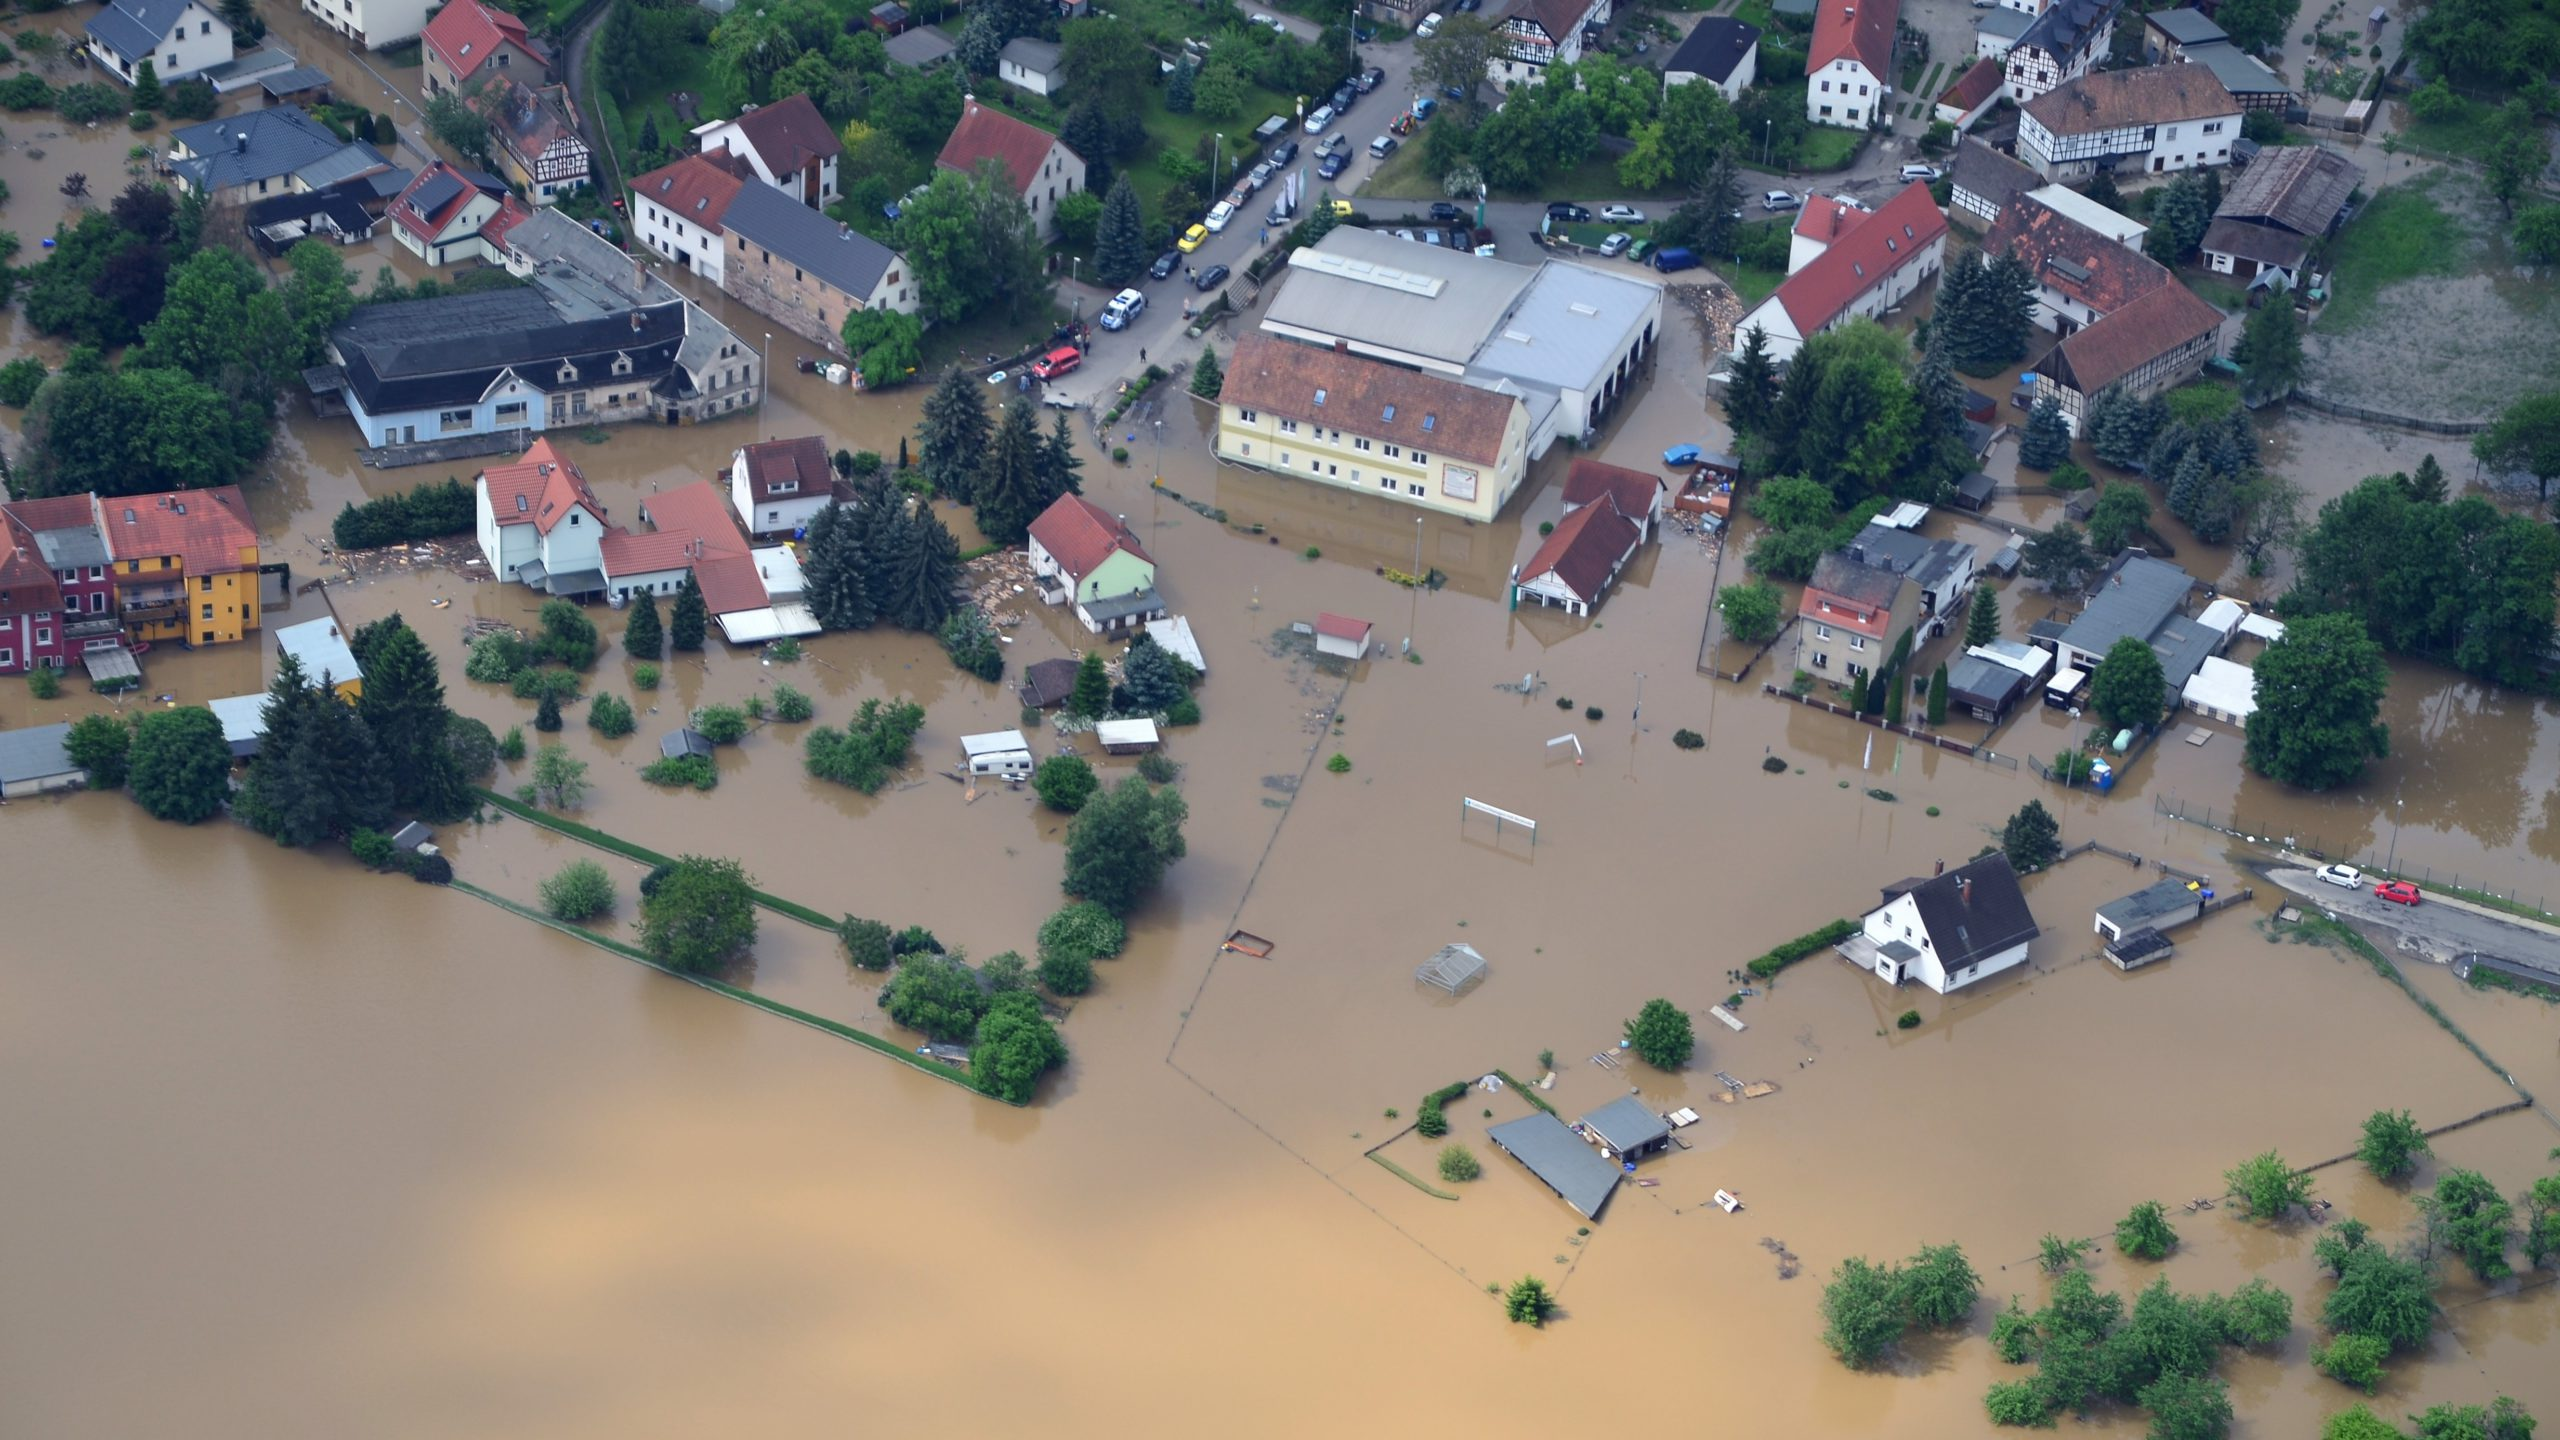 Floods stop production at Berzelius Stolberg lead plant in Germany